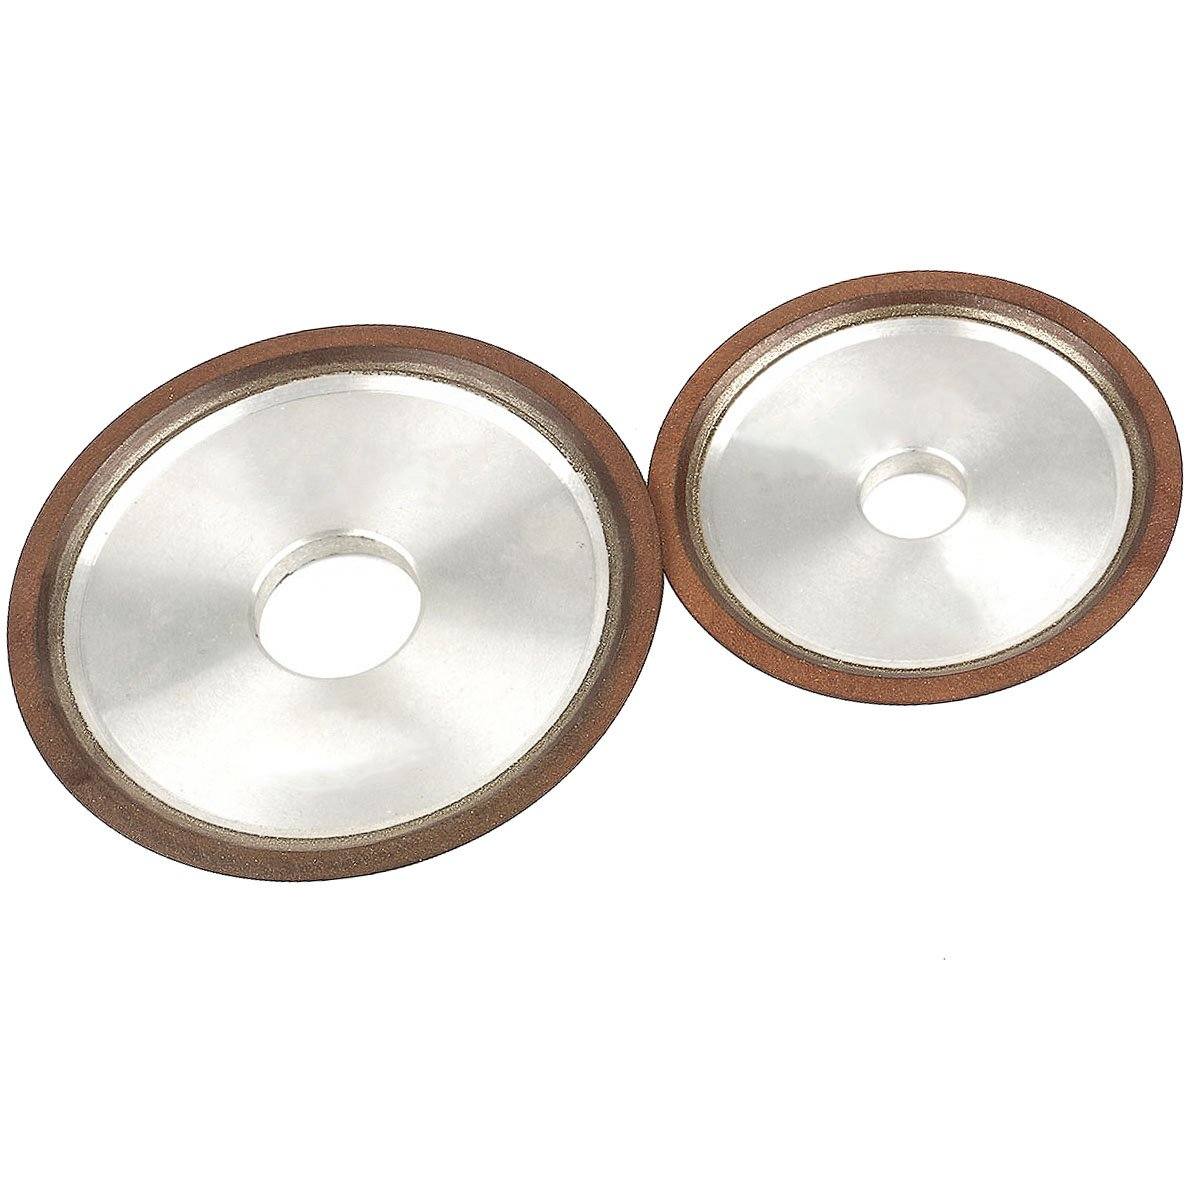 Pack of 4 Killer Filter Replacement for FILTERITE U10AW20U